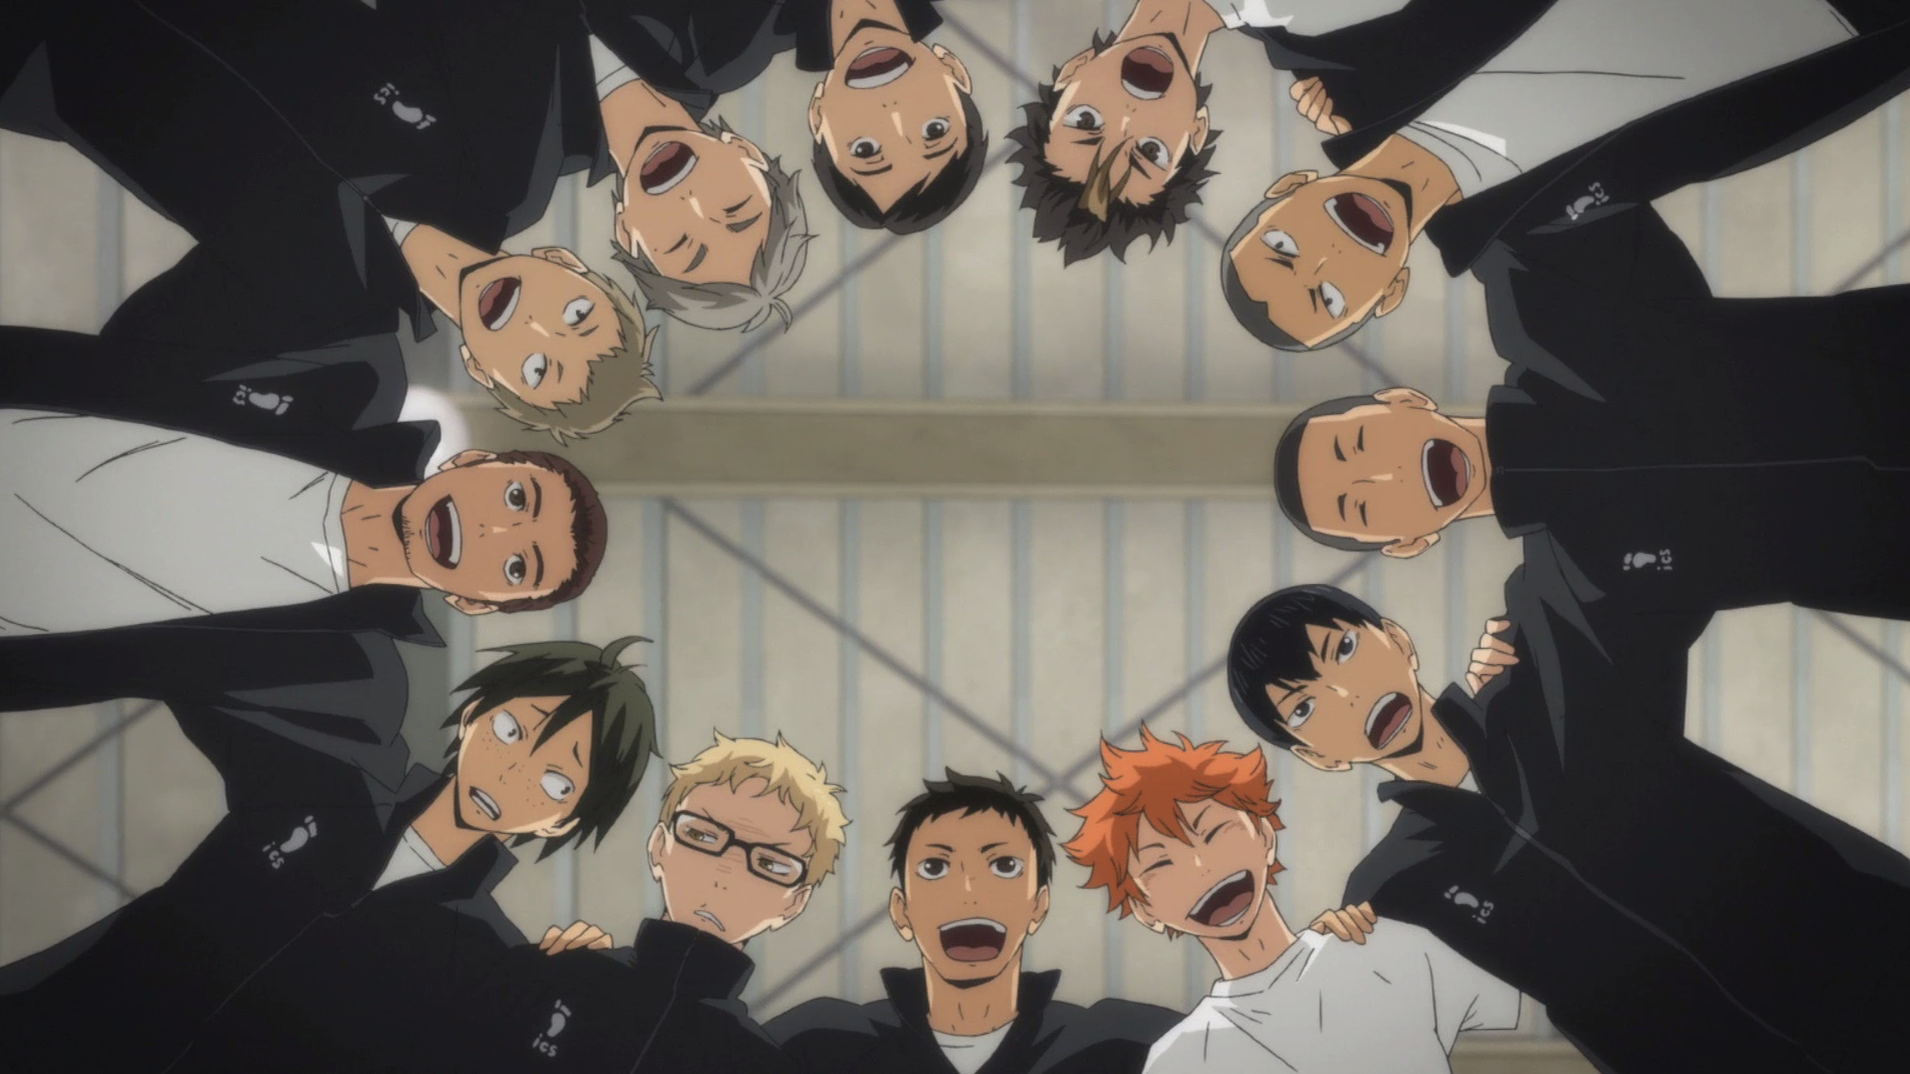 The Karasuno high school volleyball team doing a team huddle before one of their games